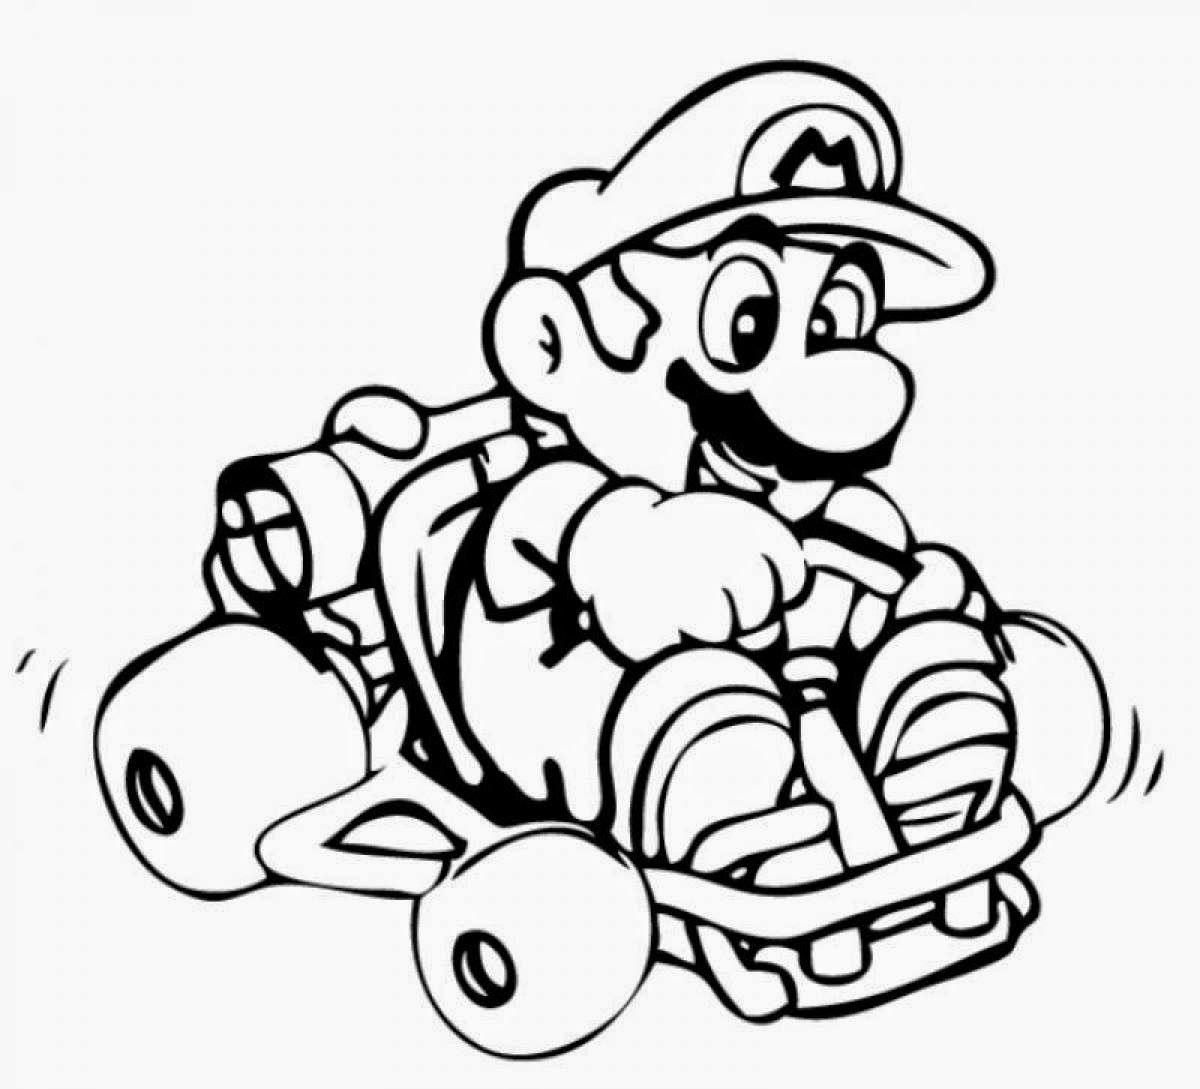 printable pictures of mario characters free printable mario brothers coloring pages for kids pictures printable mario of characters